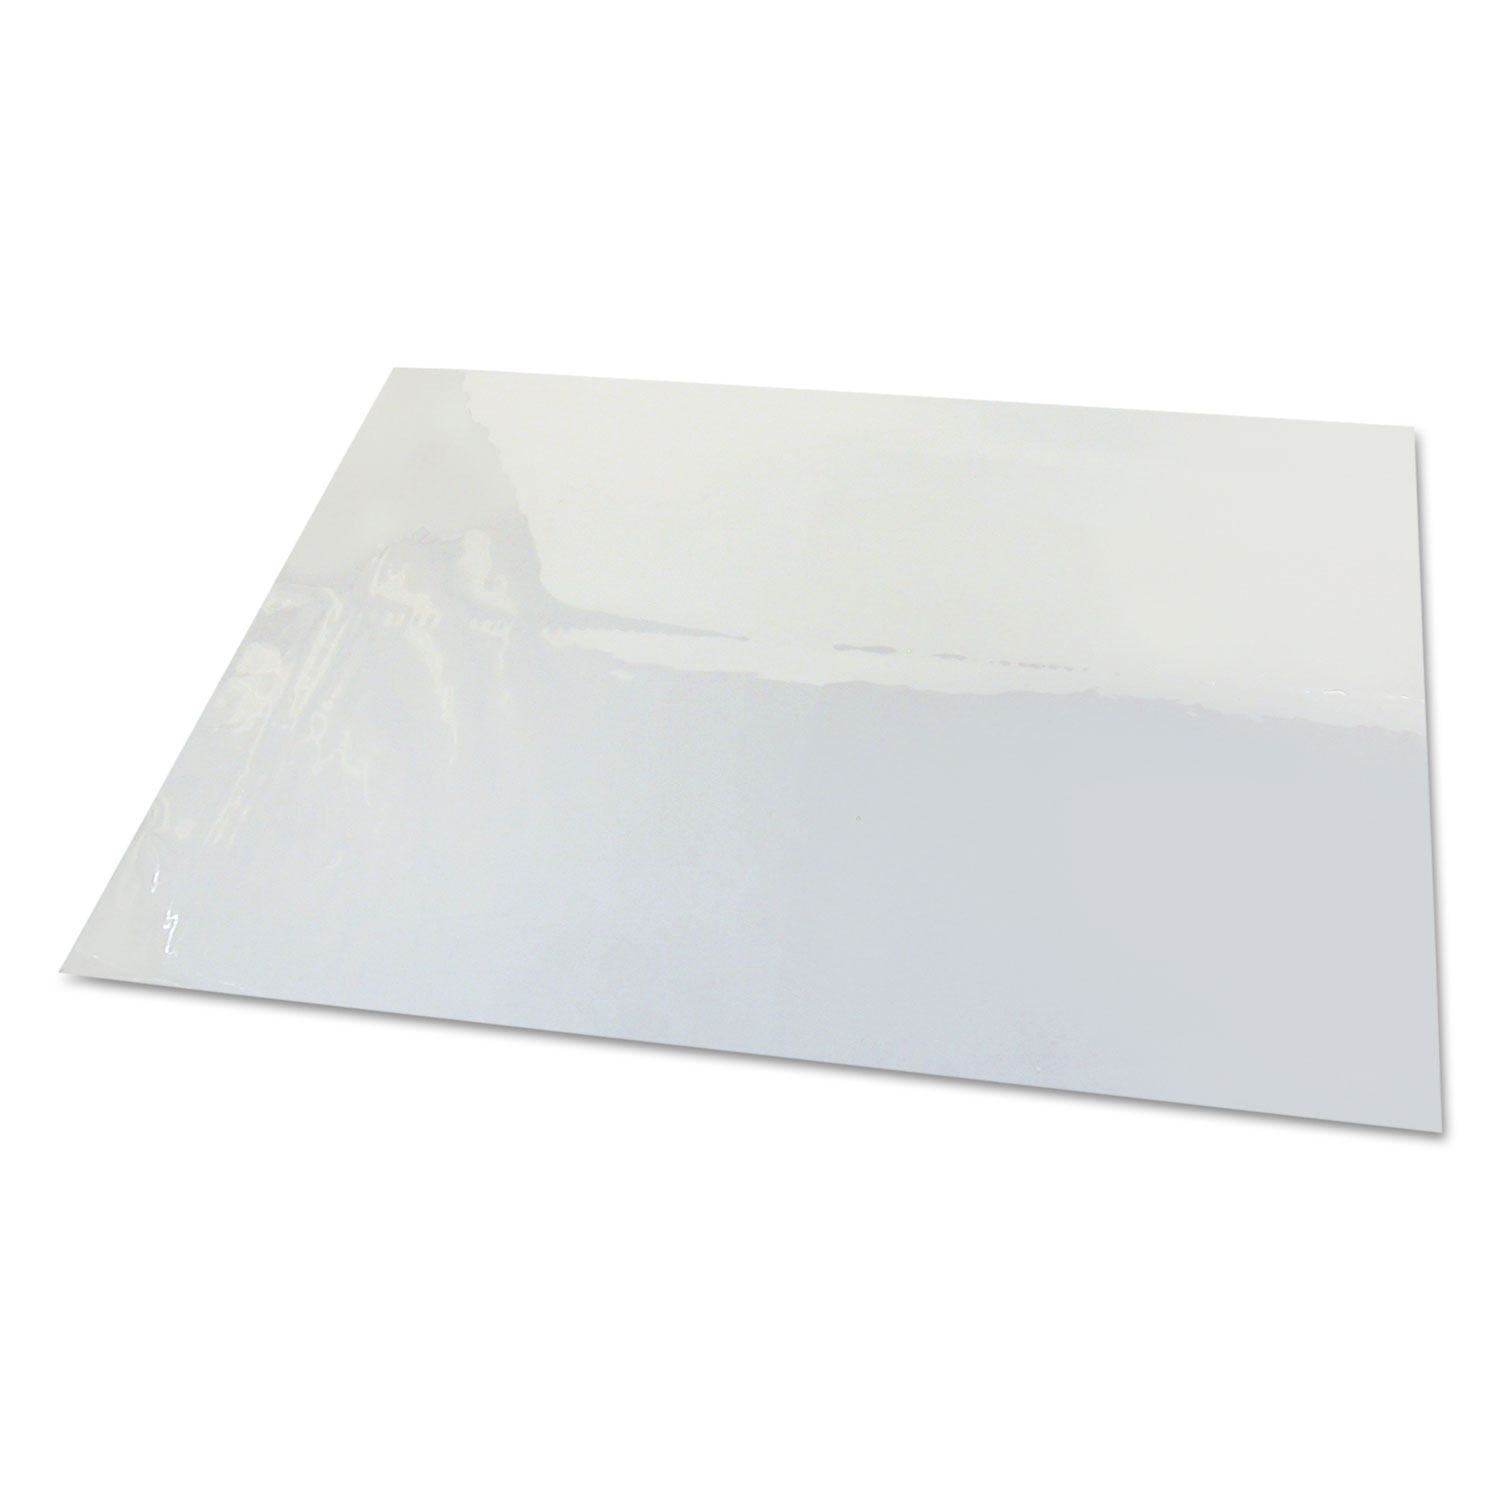 Second Sight Clear Plastic Desk Protector 40 X 25 Aopss2540 Thumbnail 1